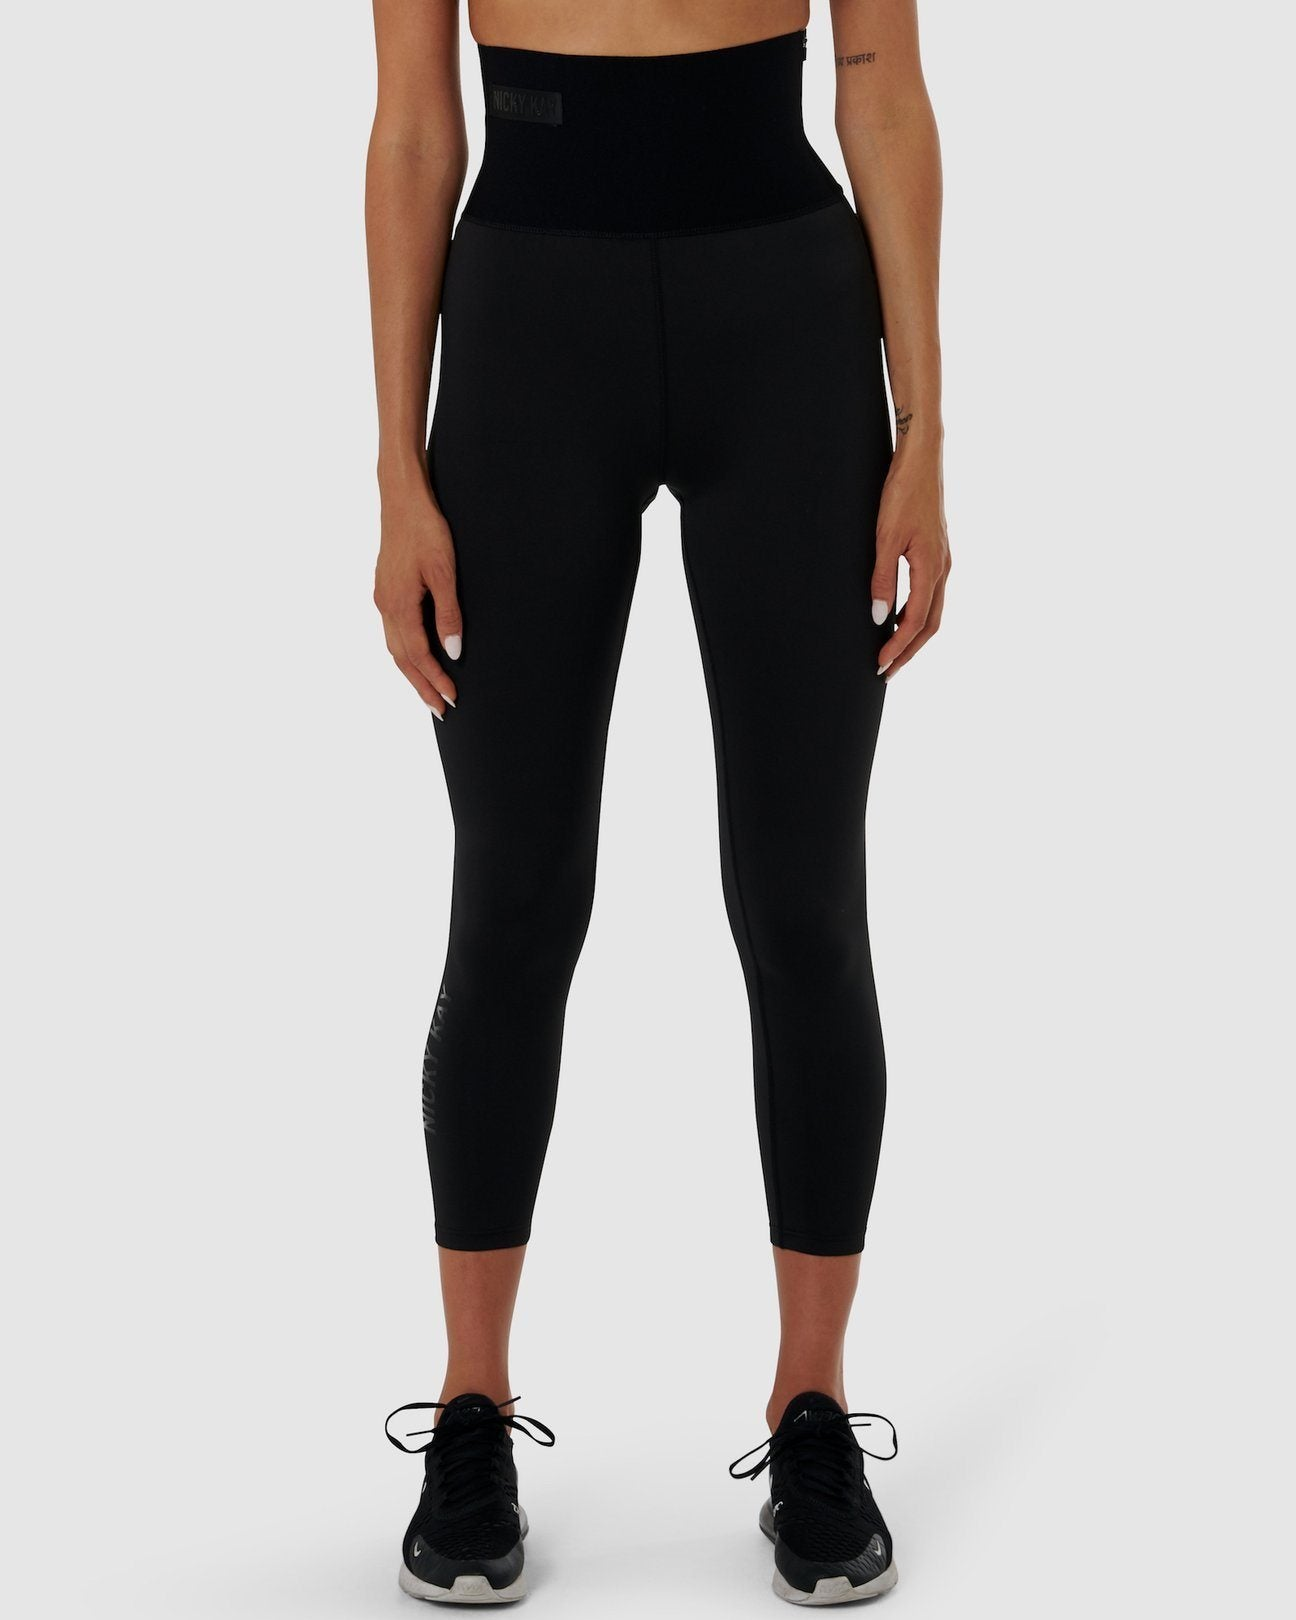 Nicky Kay Skulpt Tights - Black